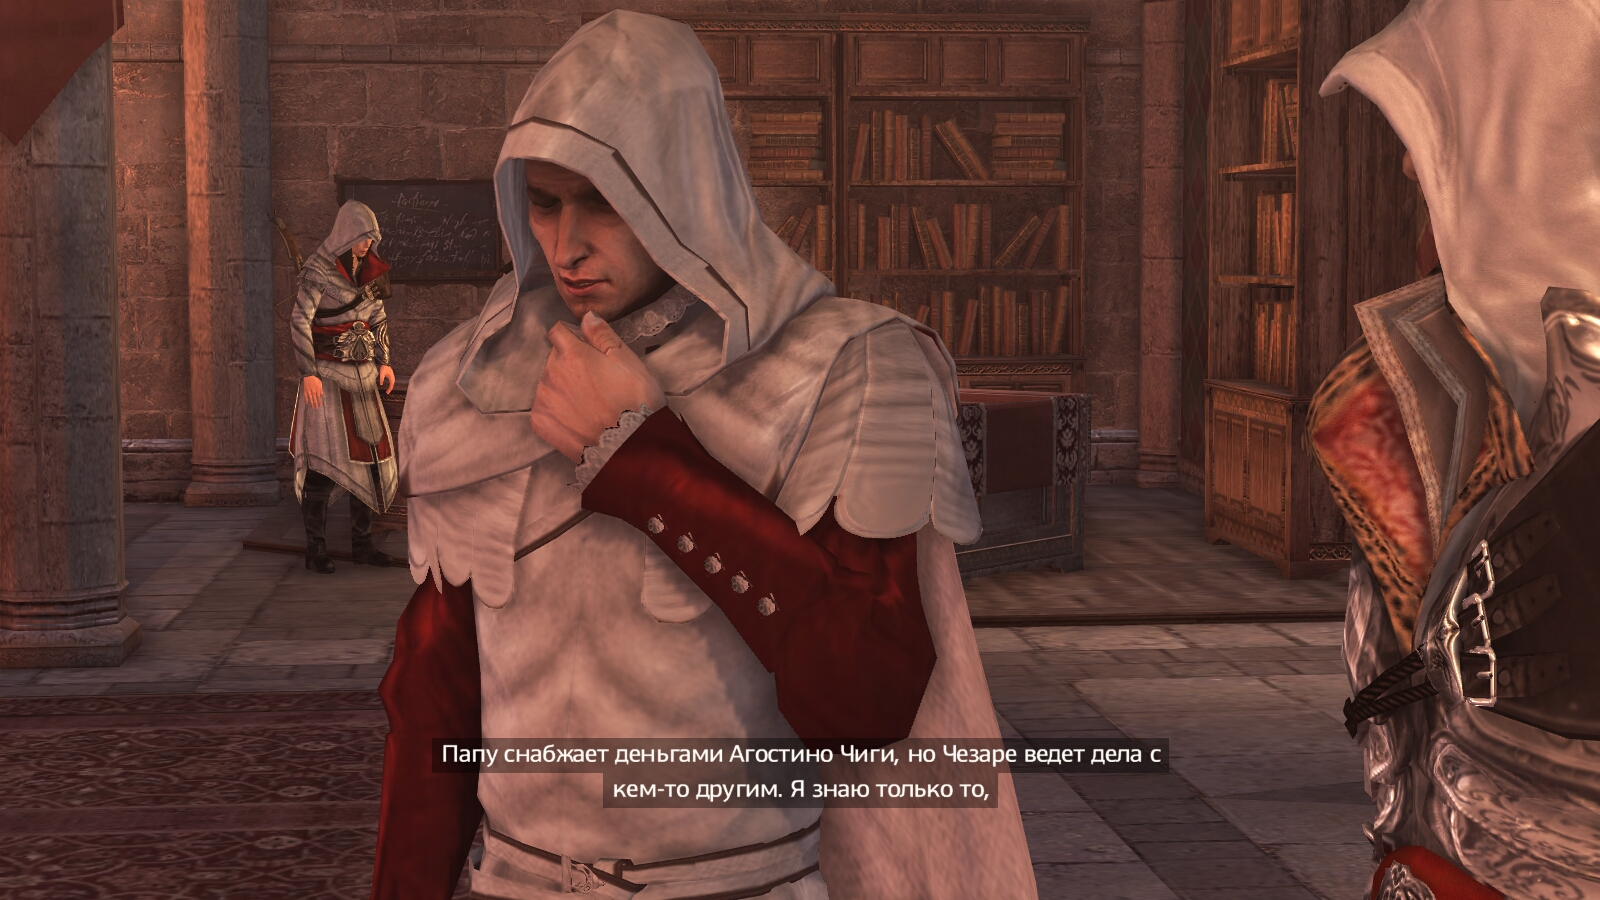 Assassin creed brotherhood naked hentia comics